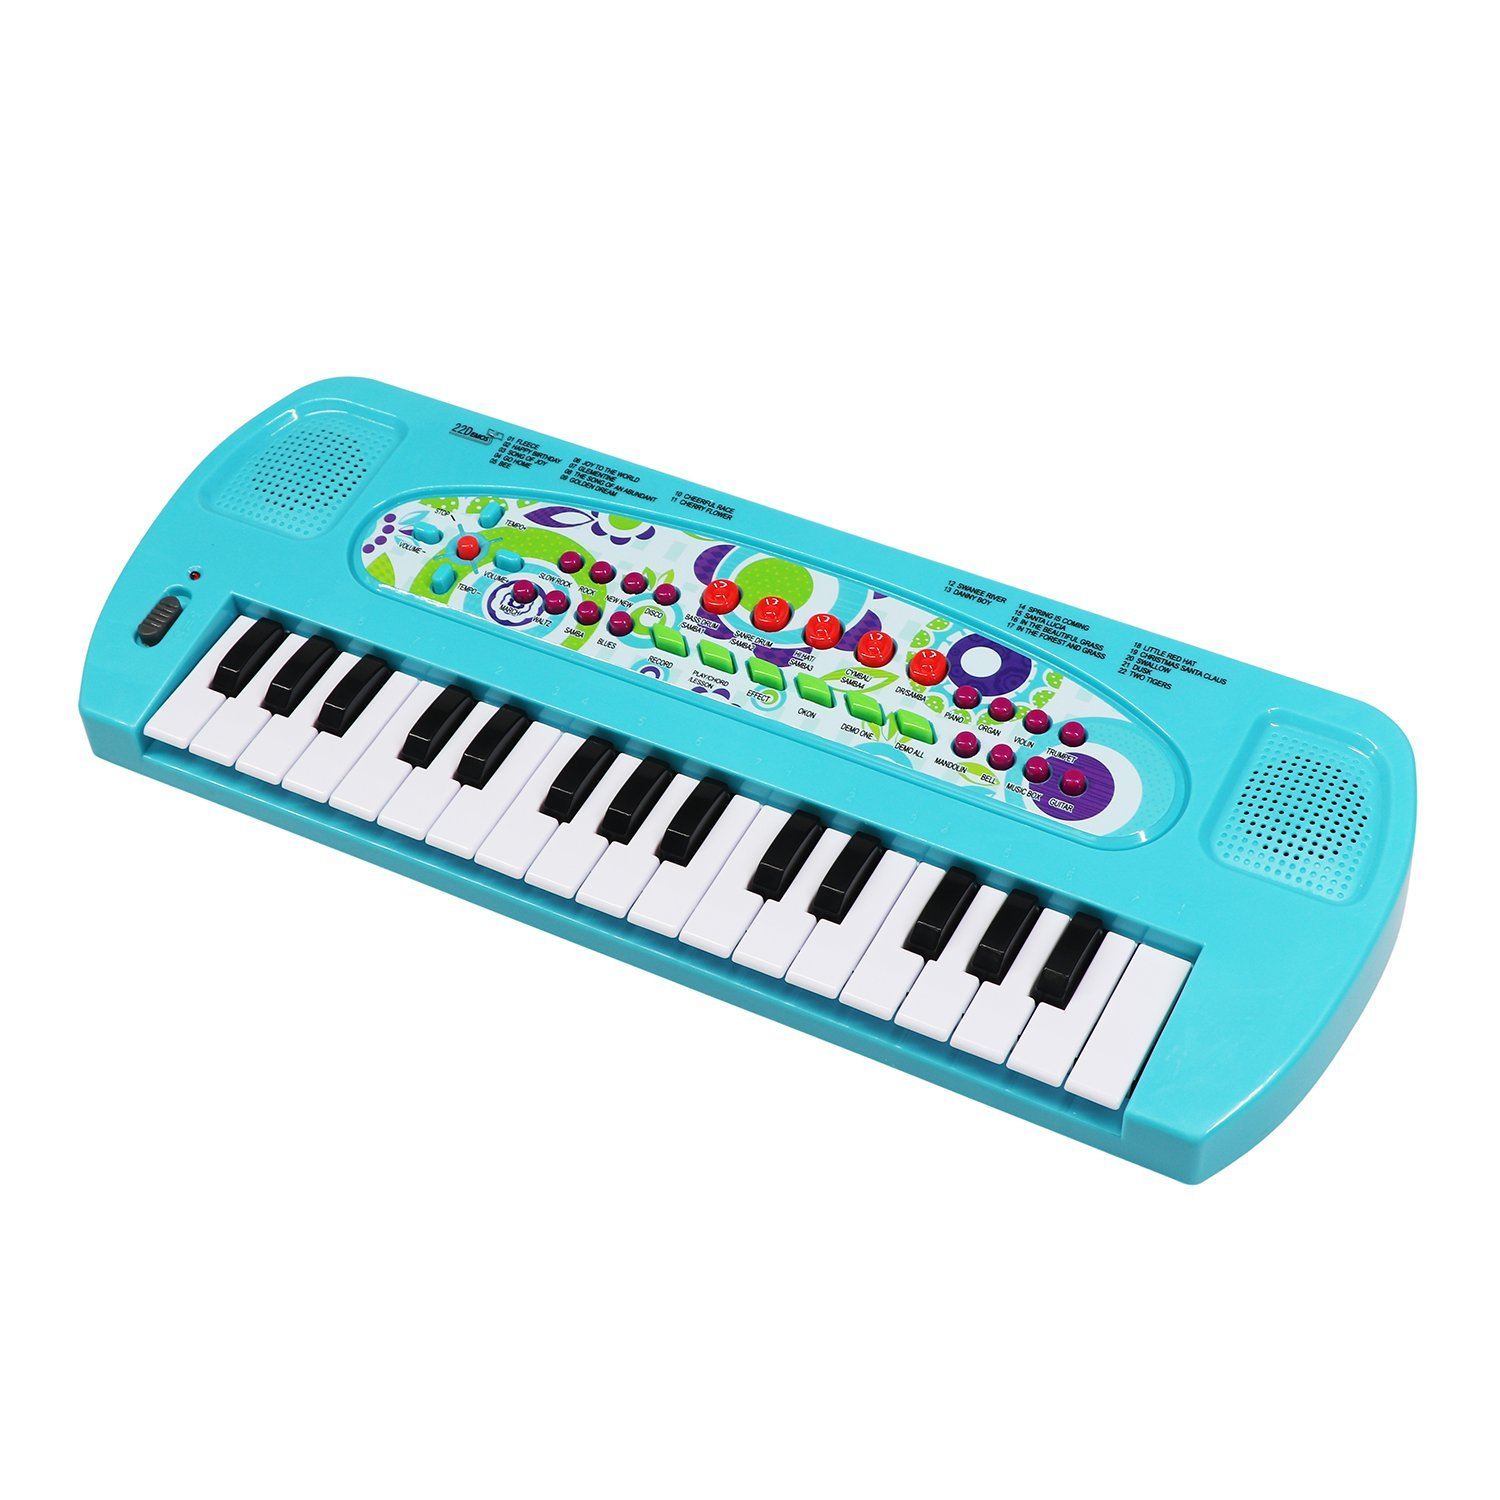 aPerfectLife 32 Keys Multifunction Portable Electronic Musical Kids Piano Keyboard Kids Children Boys Early Learning Educational Toy (Blue)